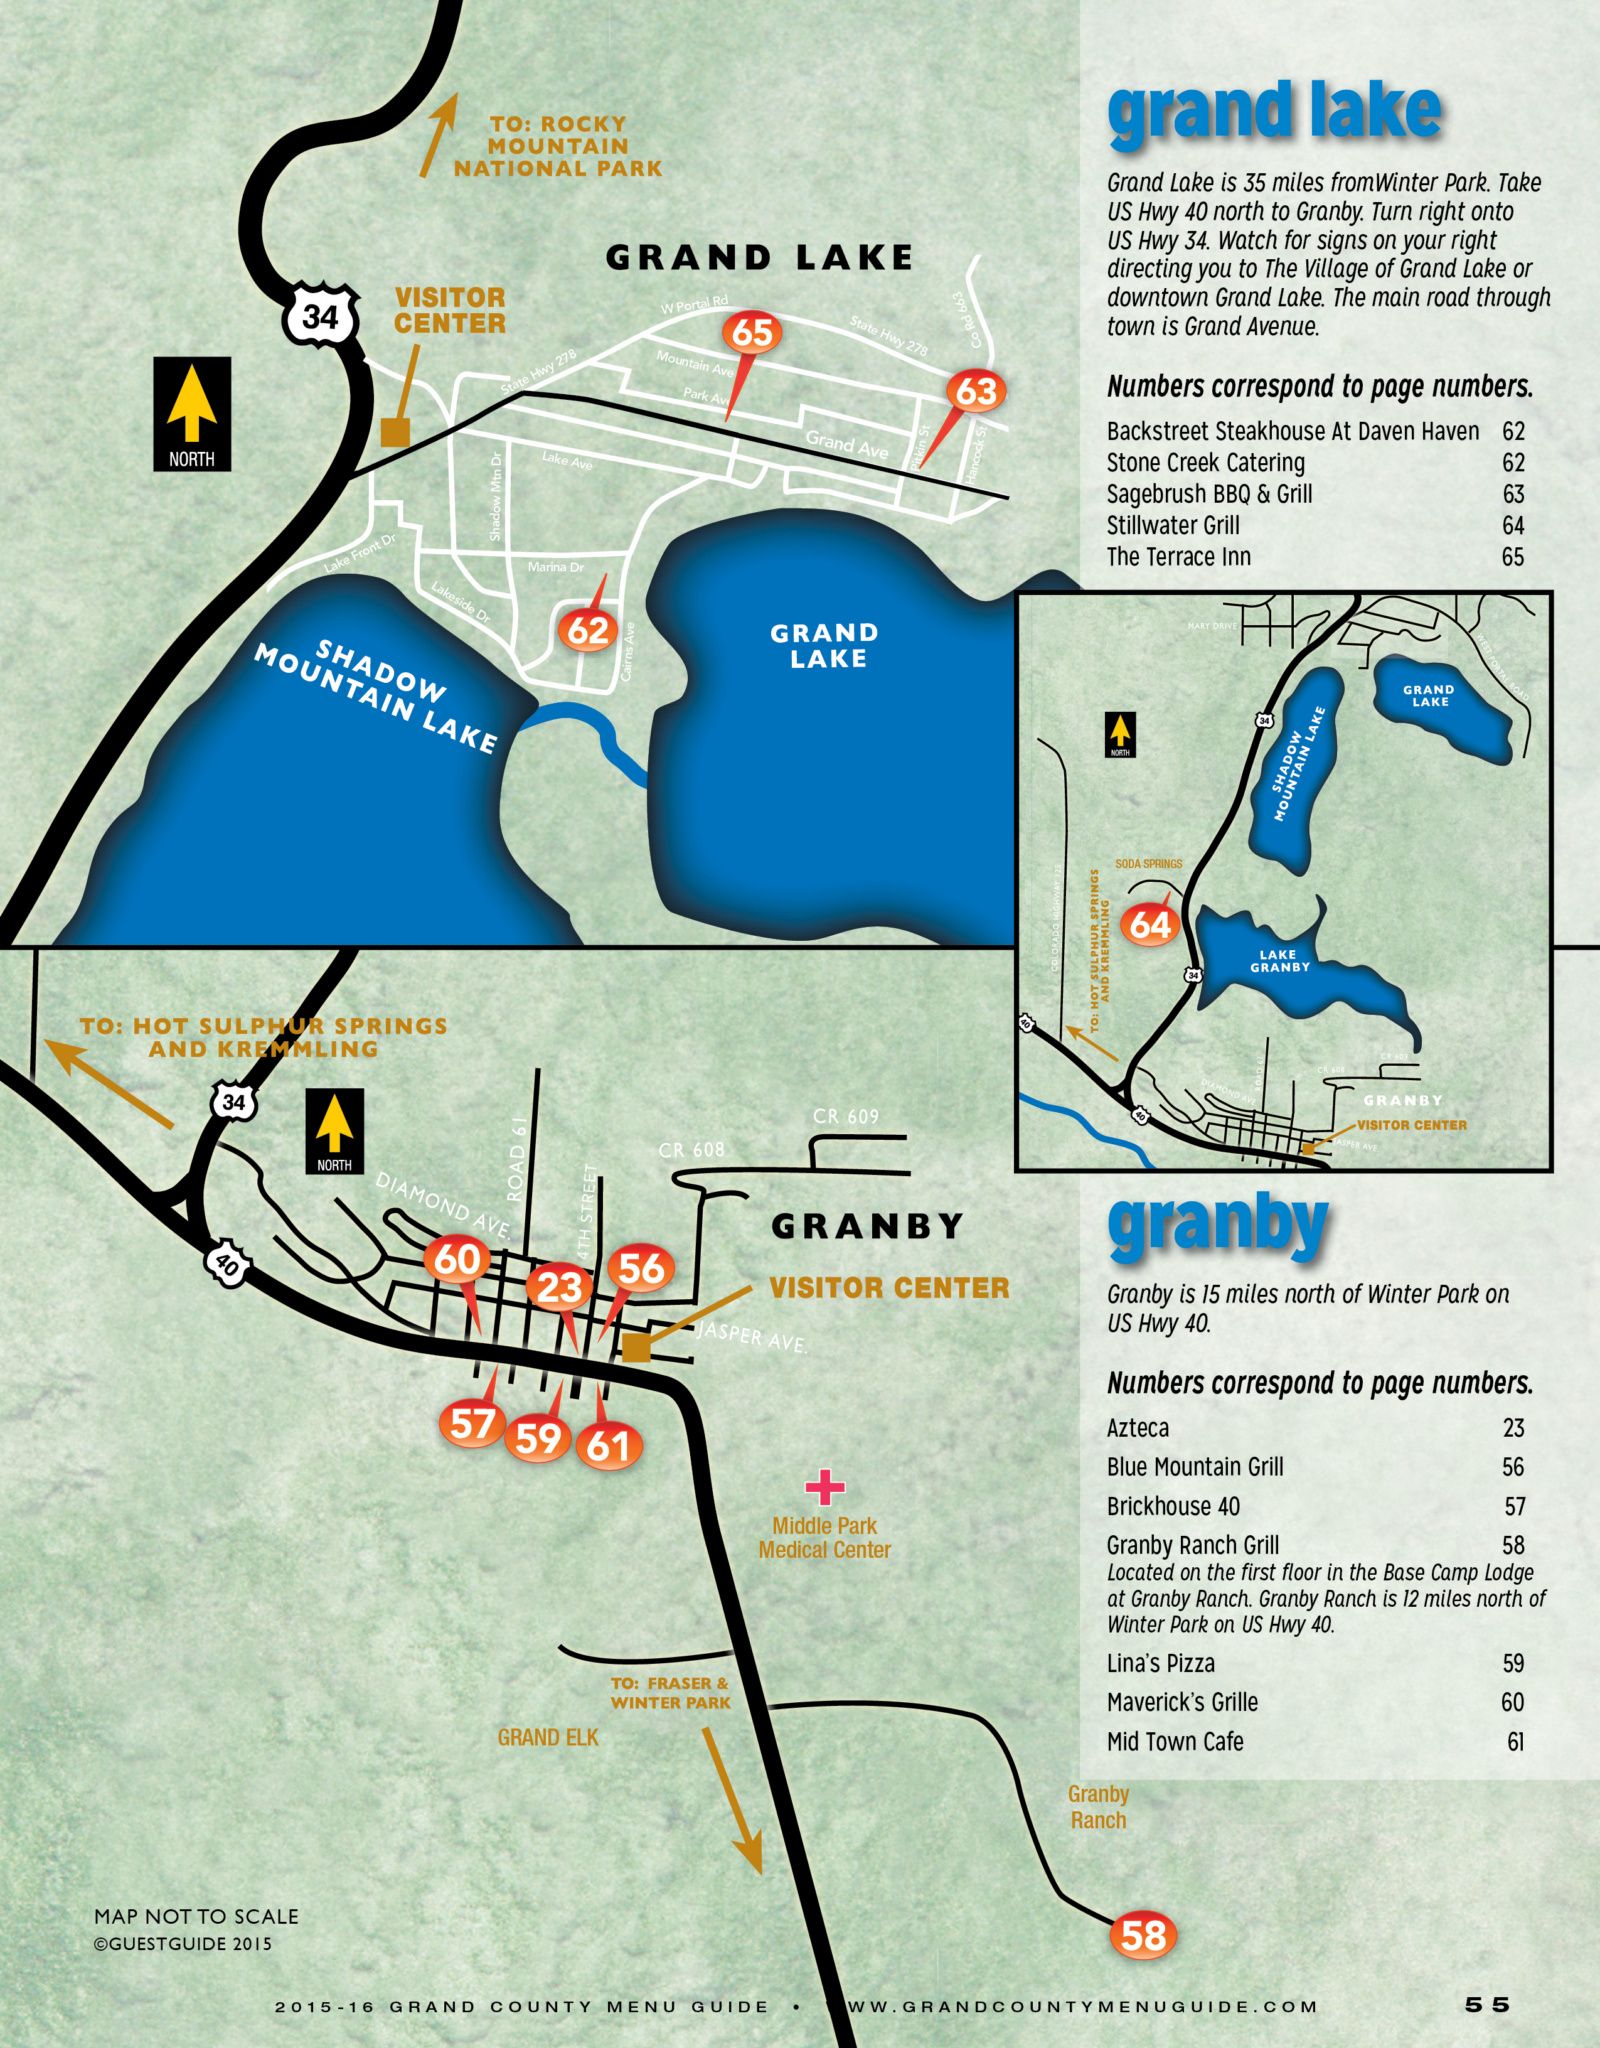 Grand-Lake-Restaurant-and-dining-Map